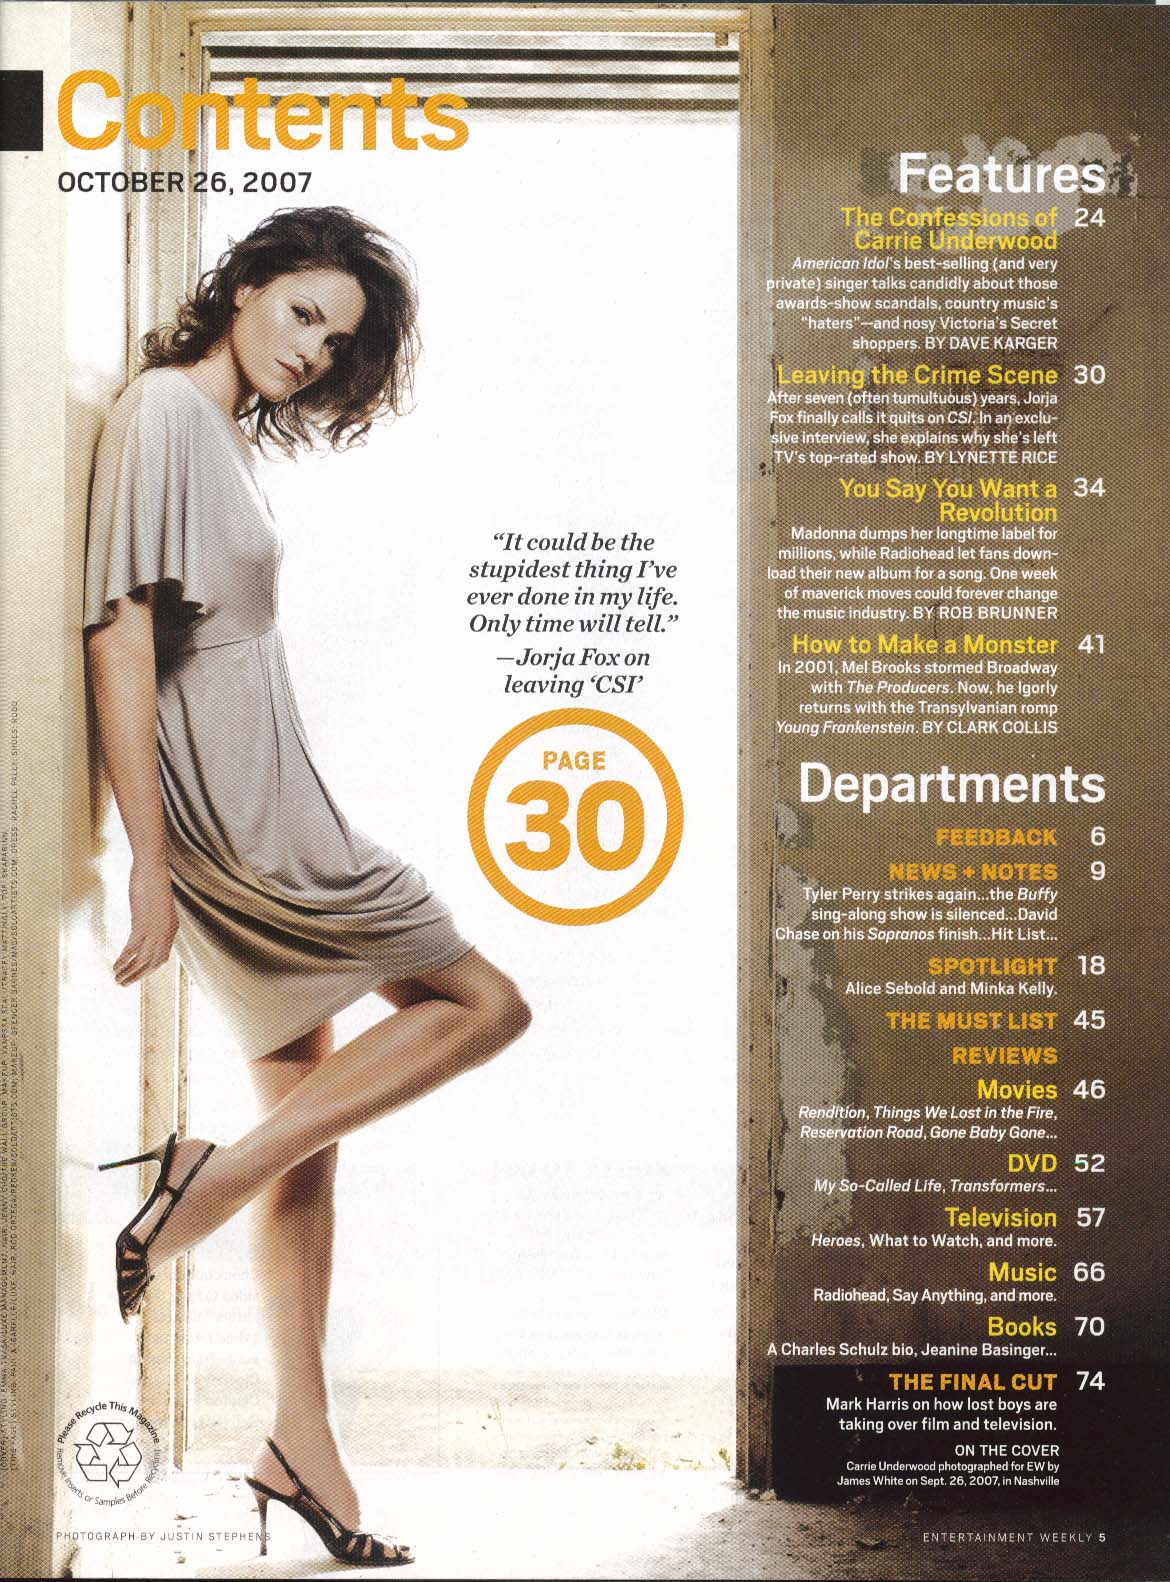 Image for ENTERTAINMENT WEEKLY #961 Carrie Underwood Madonna Radiohead ++ 10/26 2007